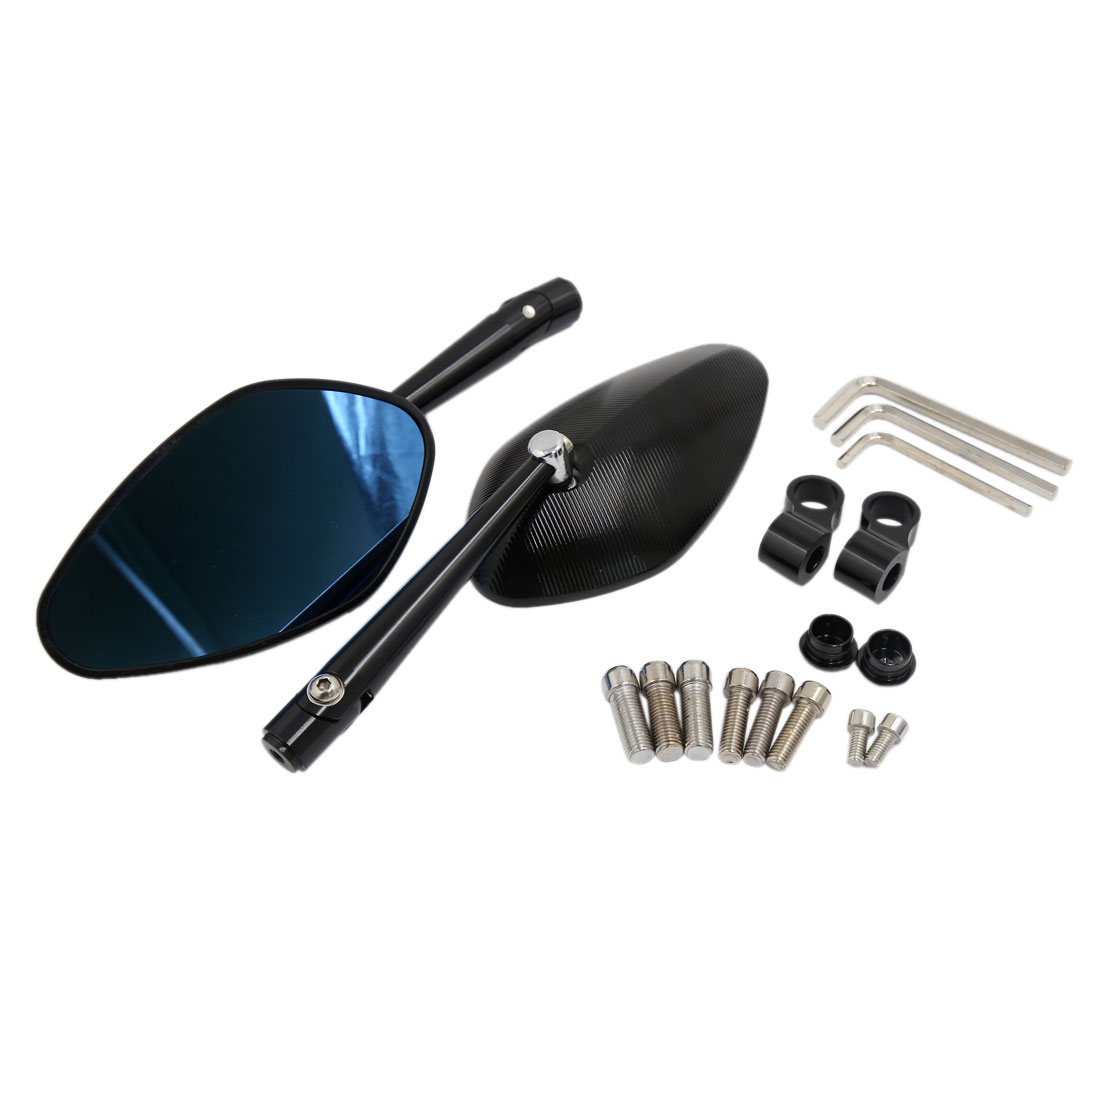 Motorcycle CNC Aluminum Alloy Black Polarized Side Rear View Mirror 2 Pcs